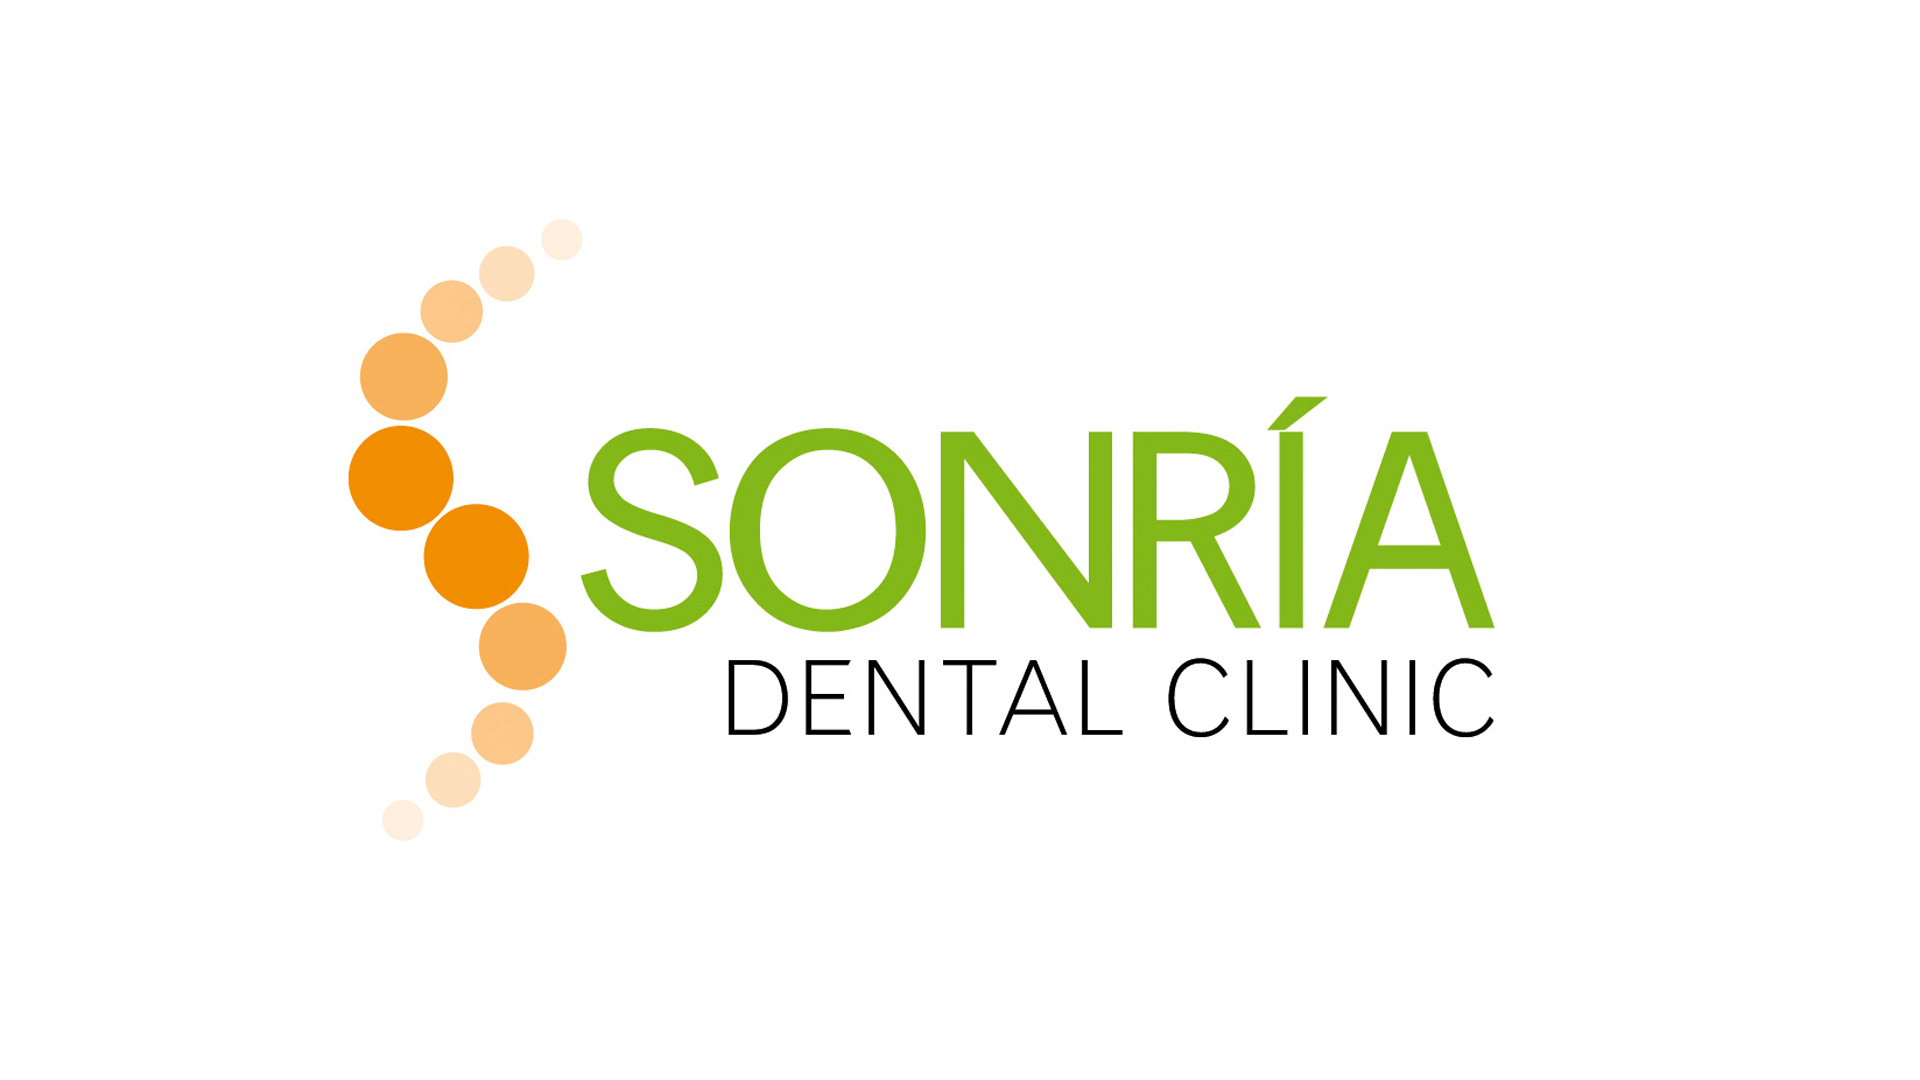 Sonría Dental Clinic